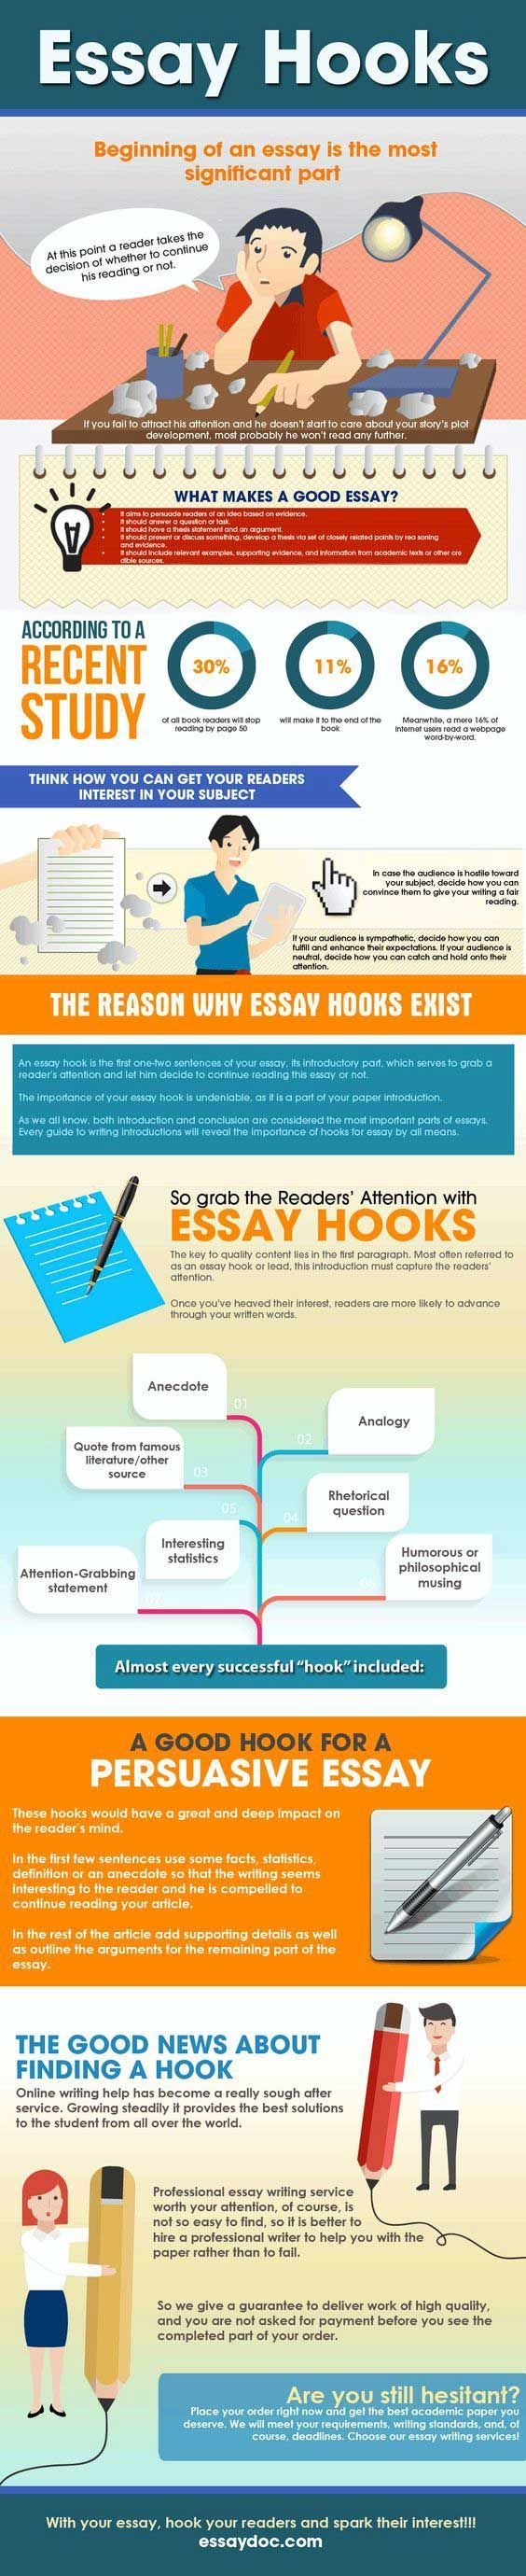 ideas about writing an essay essay writing 1000 ideas about writing an essay essay writing tips essay tips and college essay